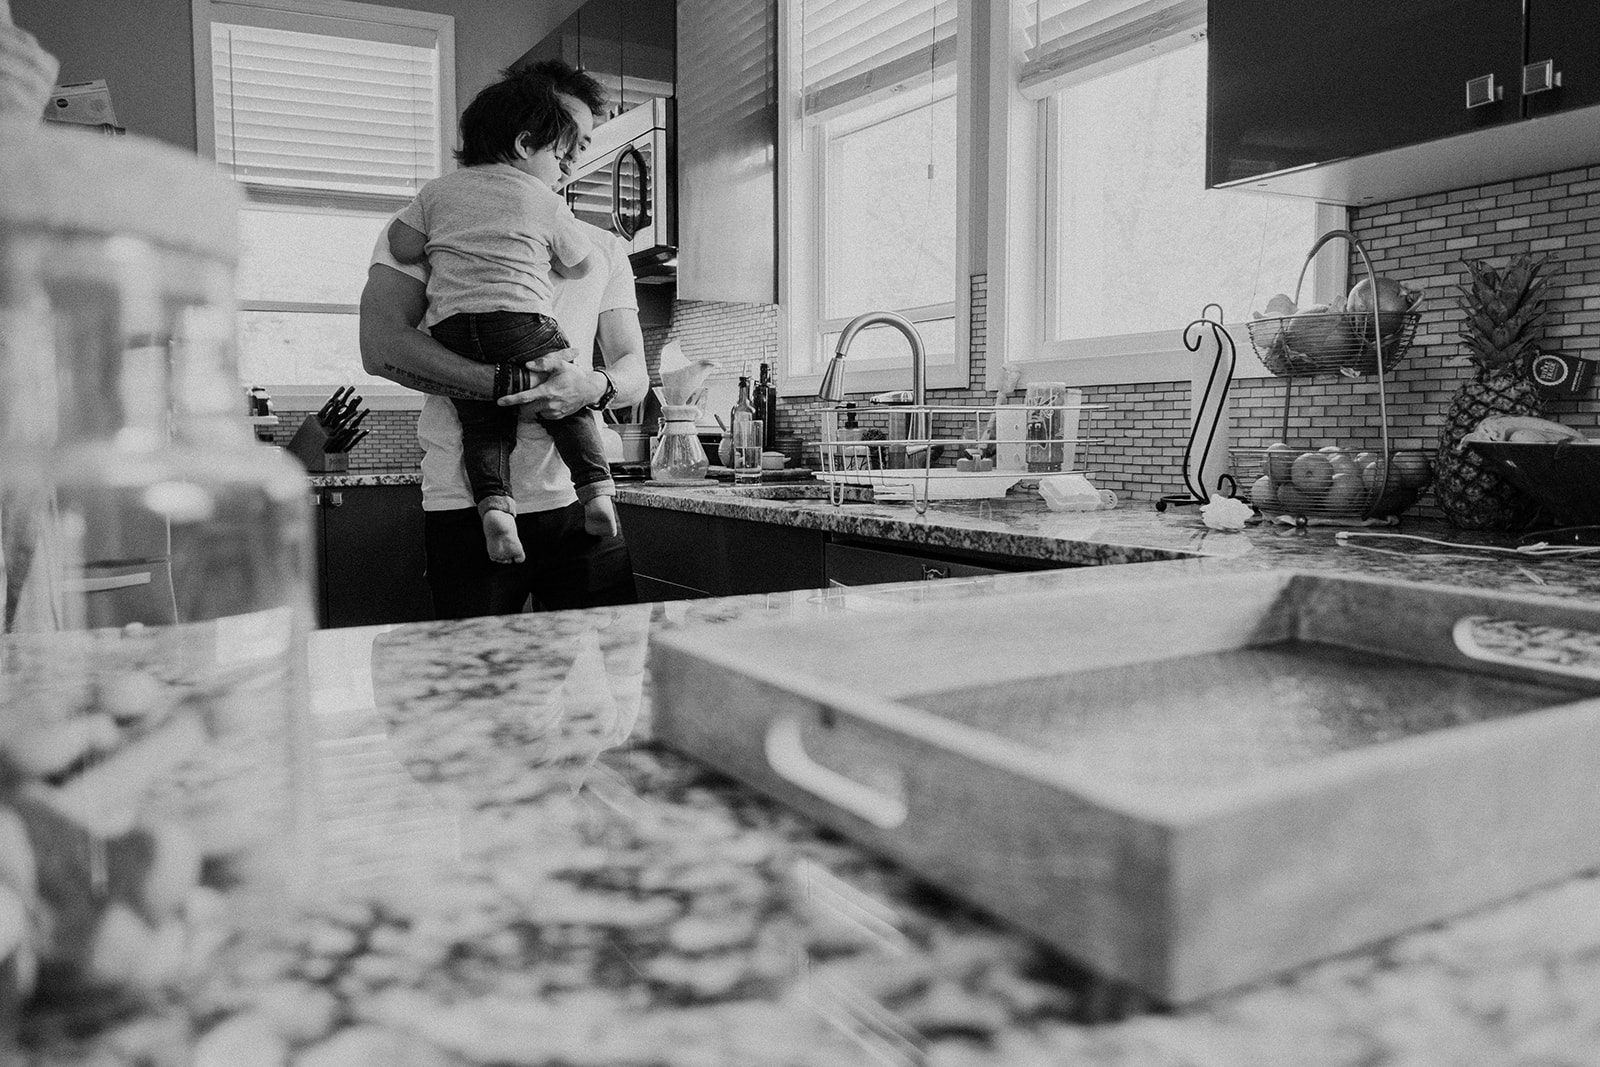 A father holds his son in the kitchen of their DC home during an in-home family photography session.